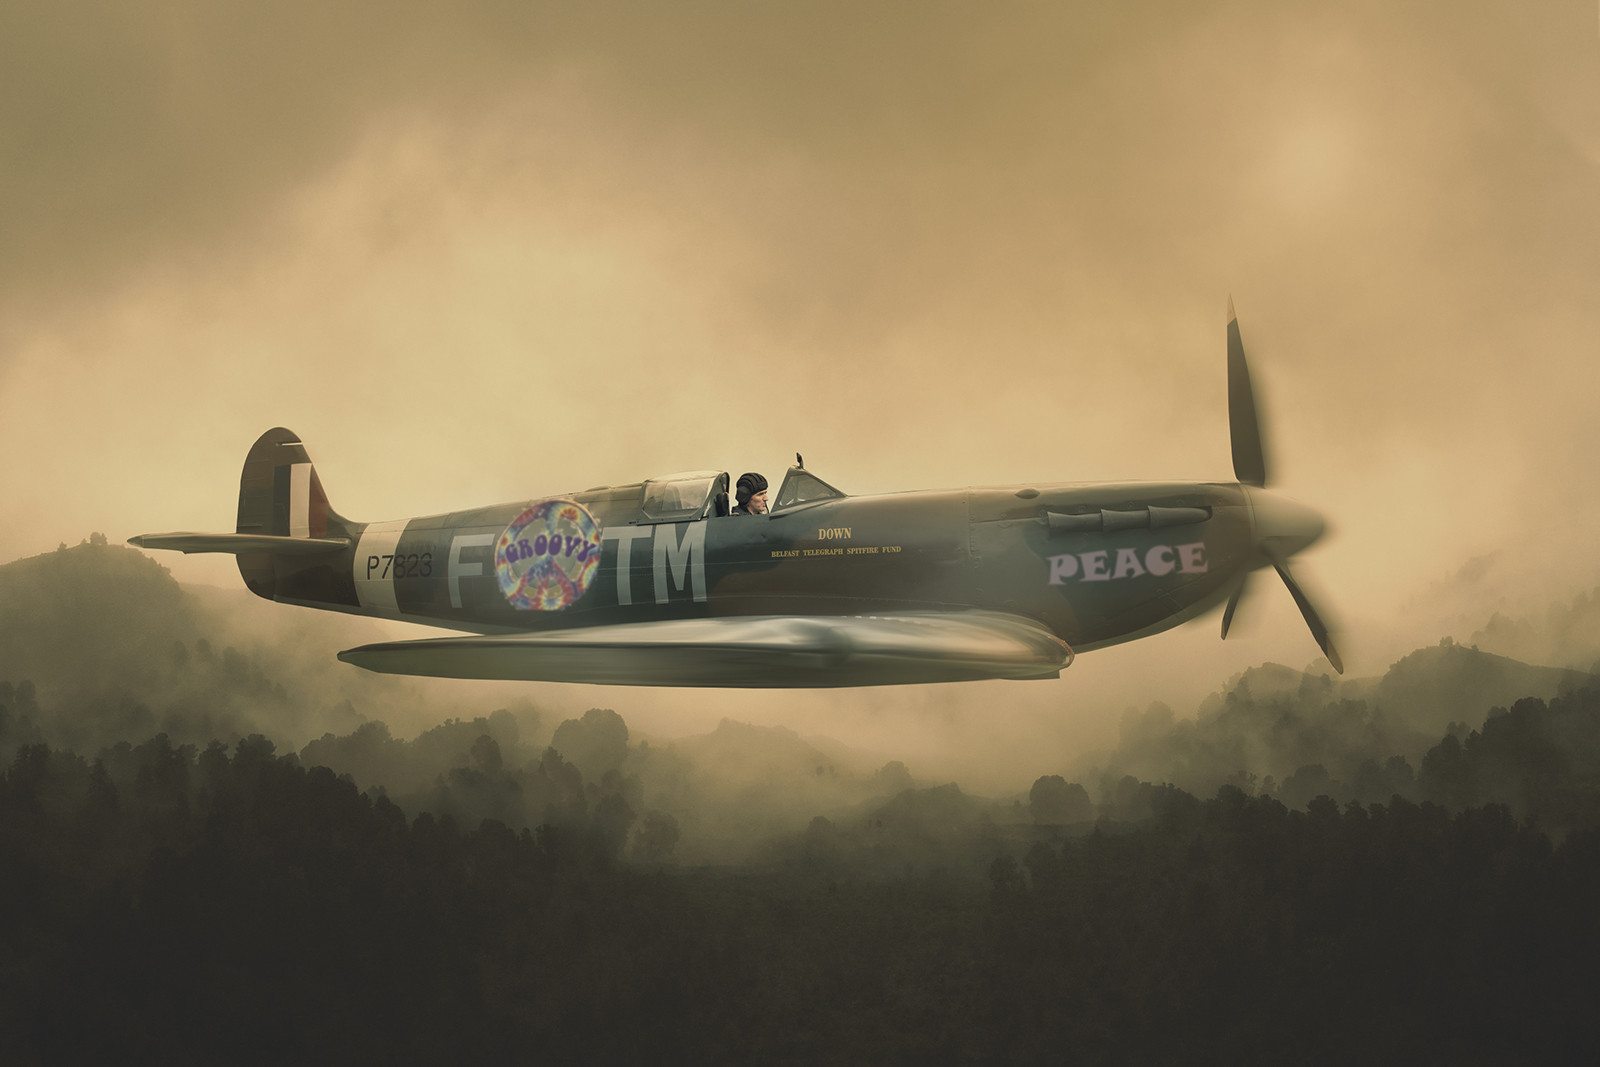 COLOUR - Pease Spitfire by Carson Clarke (10 marks)